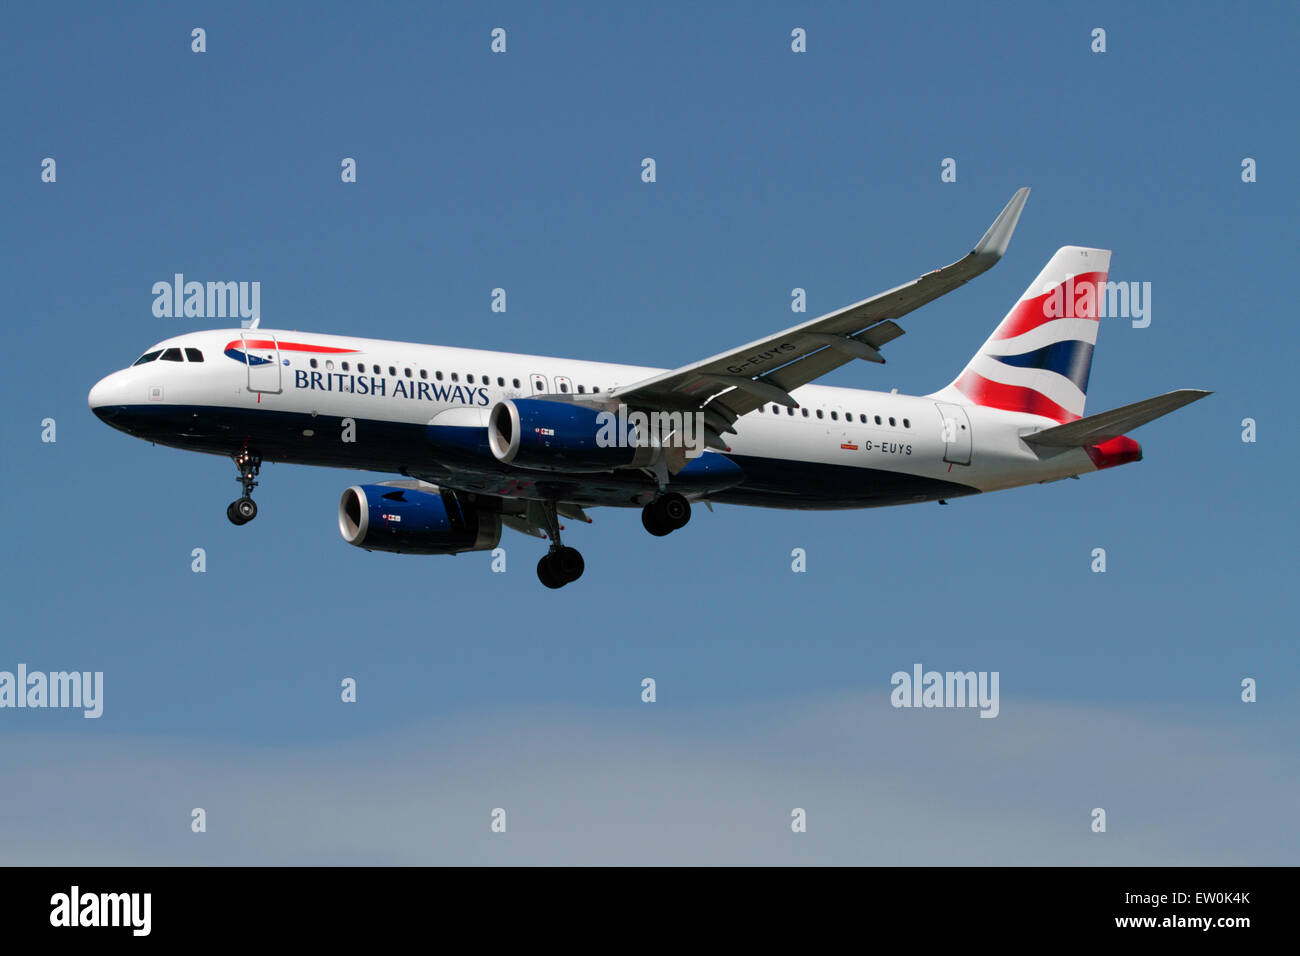 British Airways Airbus A320 passenger jet plane with sharklets (winglets or upturned wingtips). Modern aviation. - Stock Image